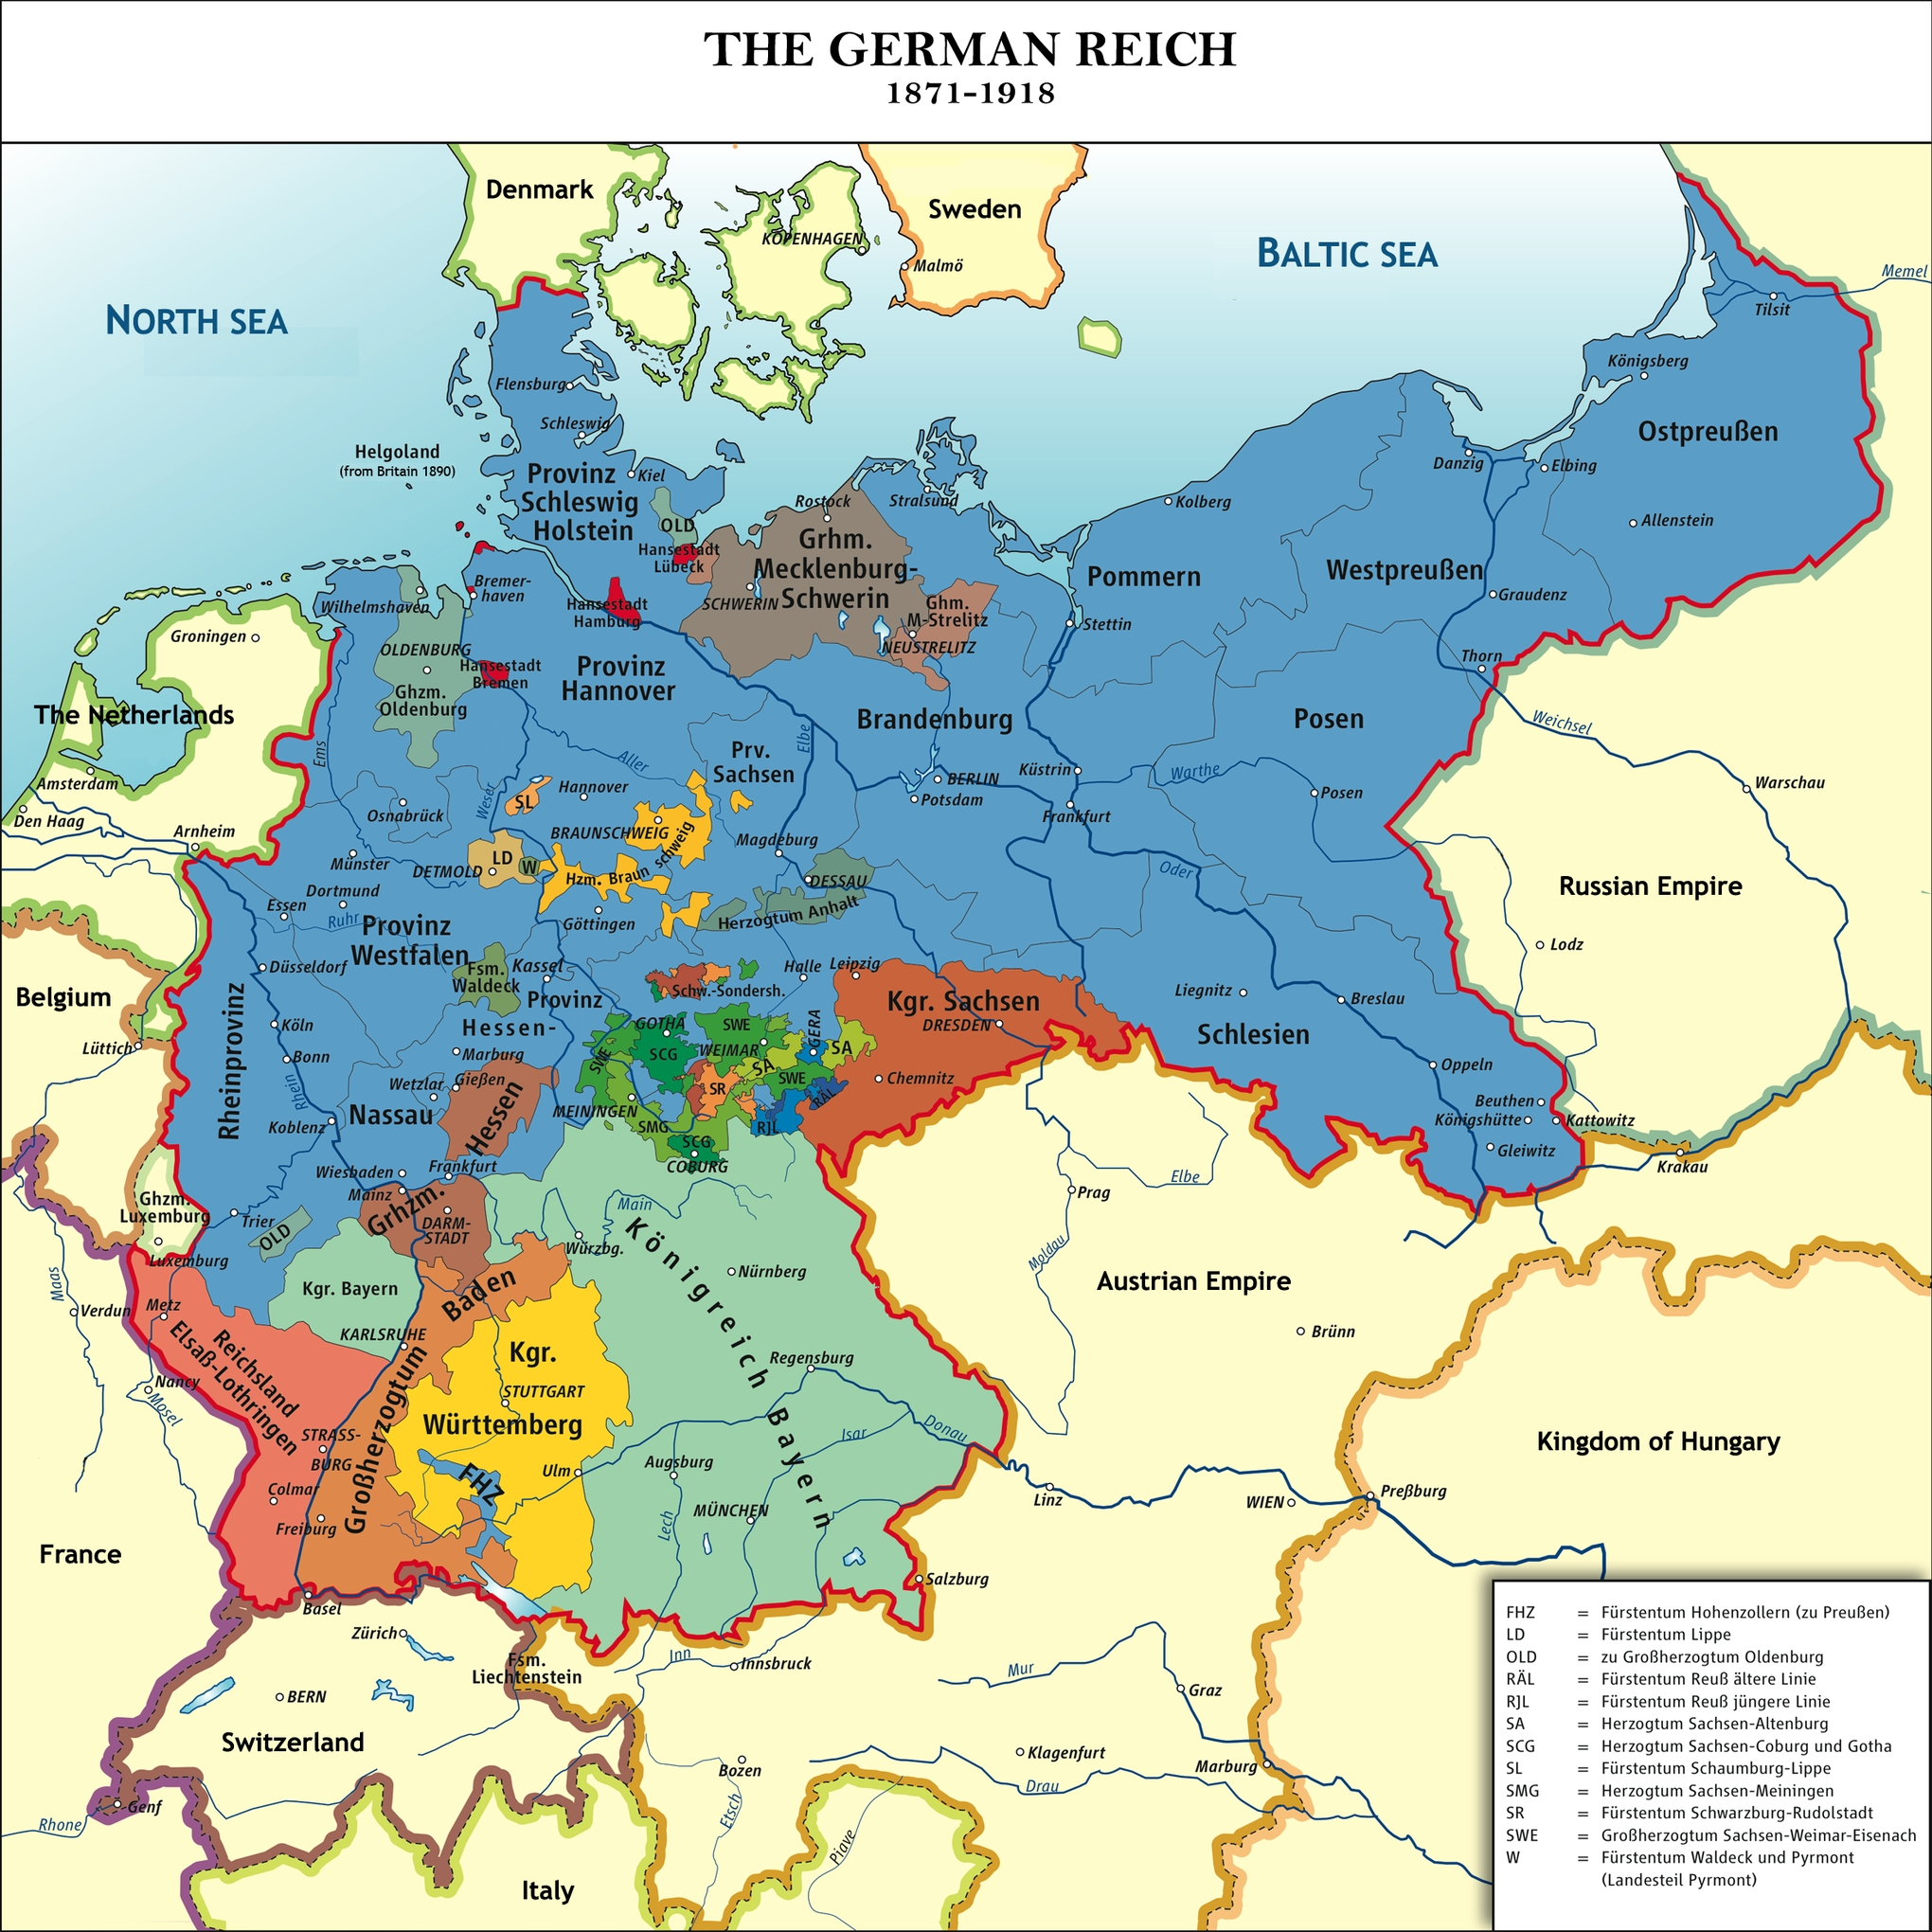 40 Maps That Explain World War I   Vox intended for Map Of Germany Before Ww1